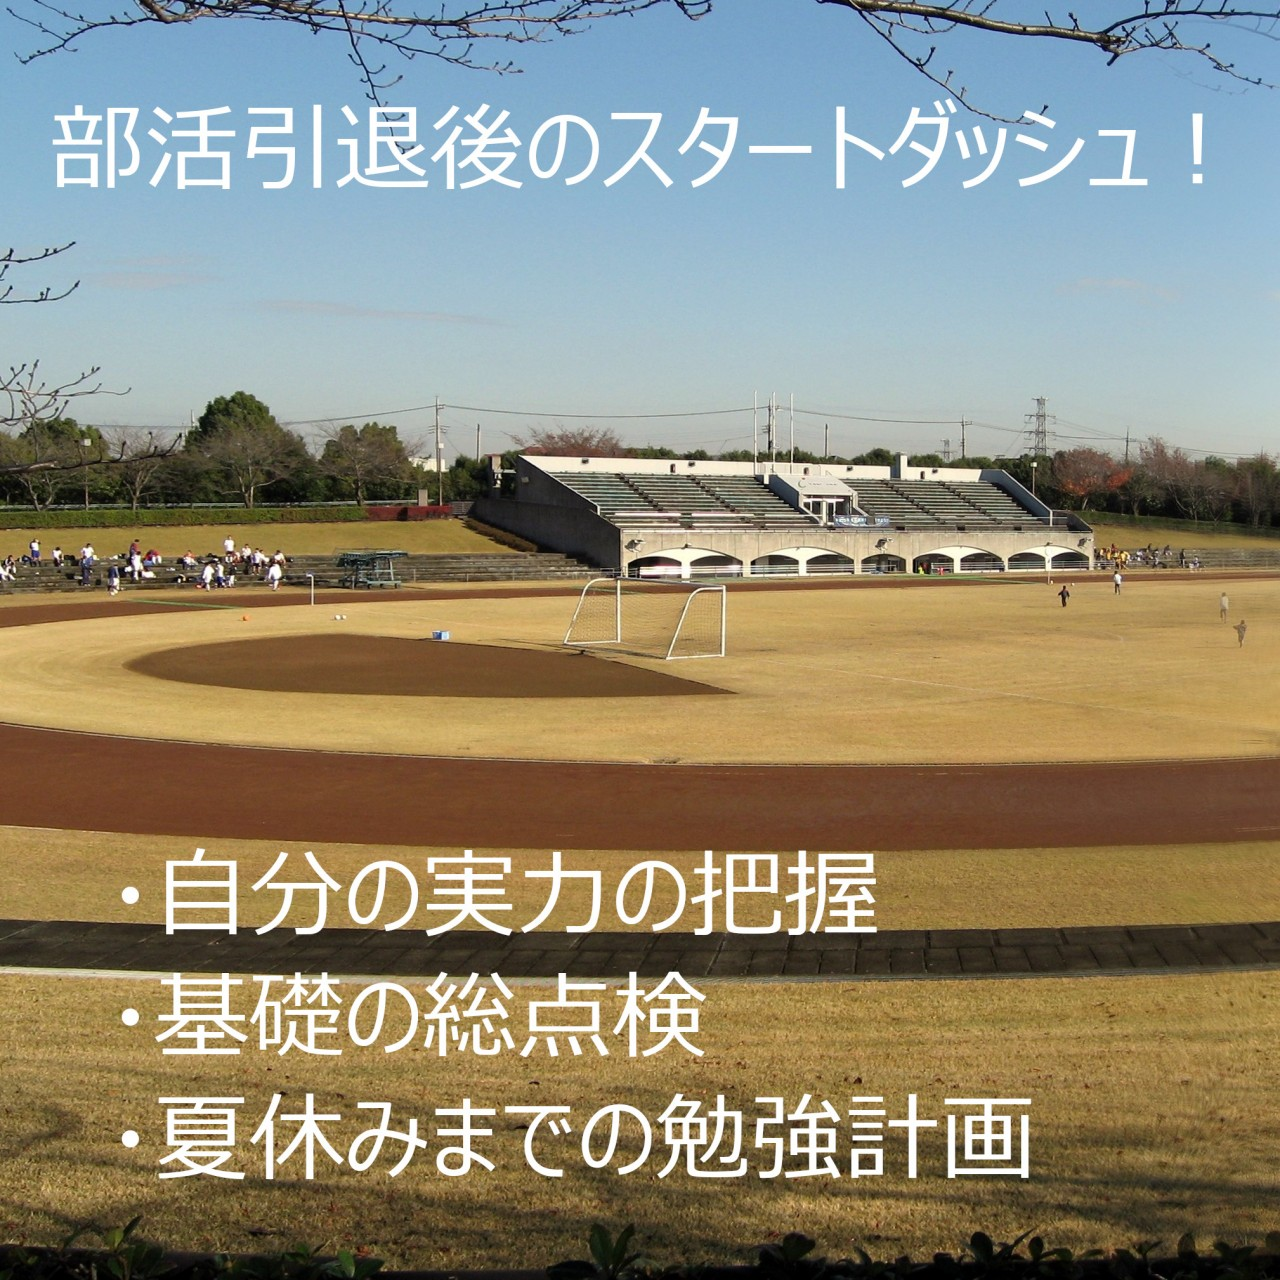 Inagi_Chuo_Park_General_Grounds_in_2008